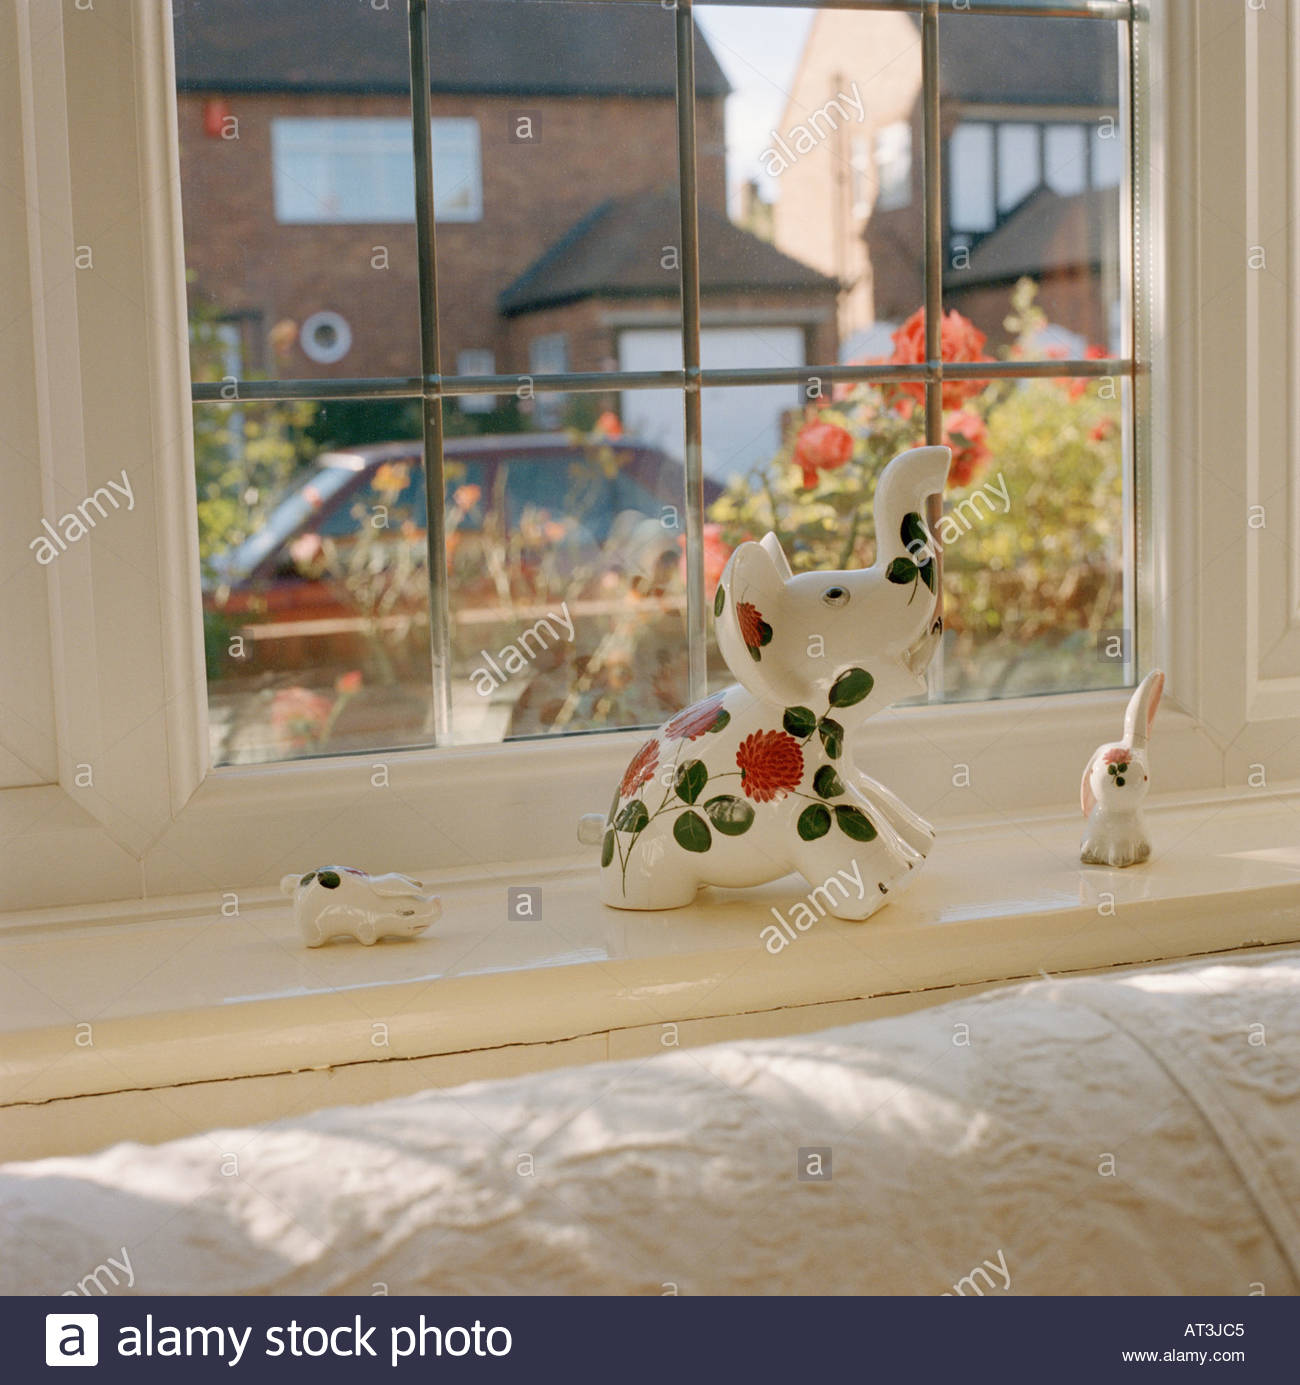 Stock Photo   Window sill in living room with ornament. Window sill in living room with ornament Stock Photo  Royalty Free